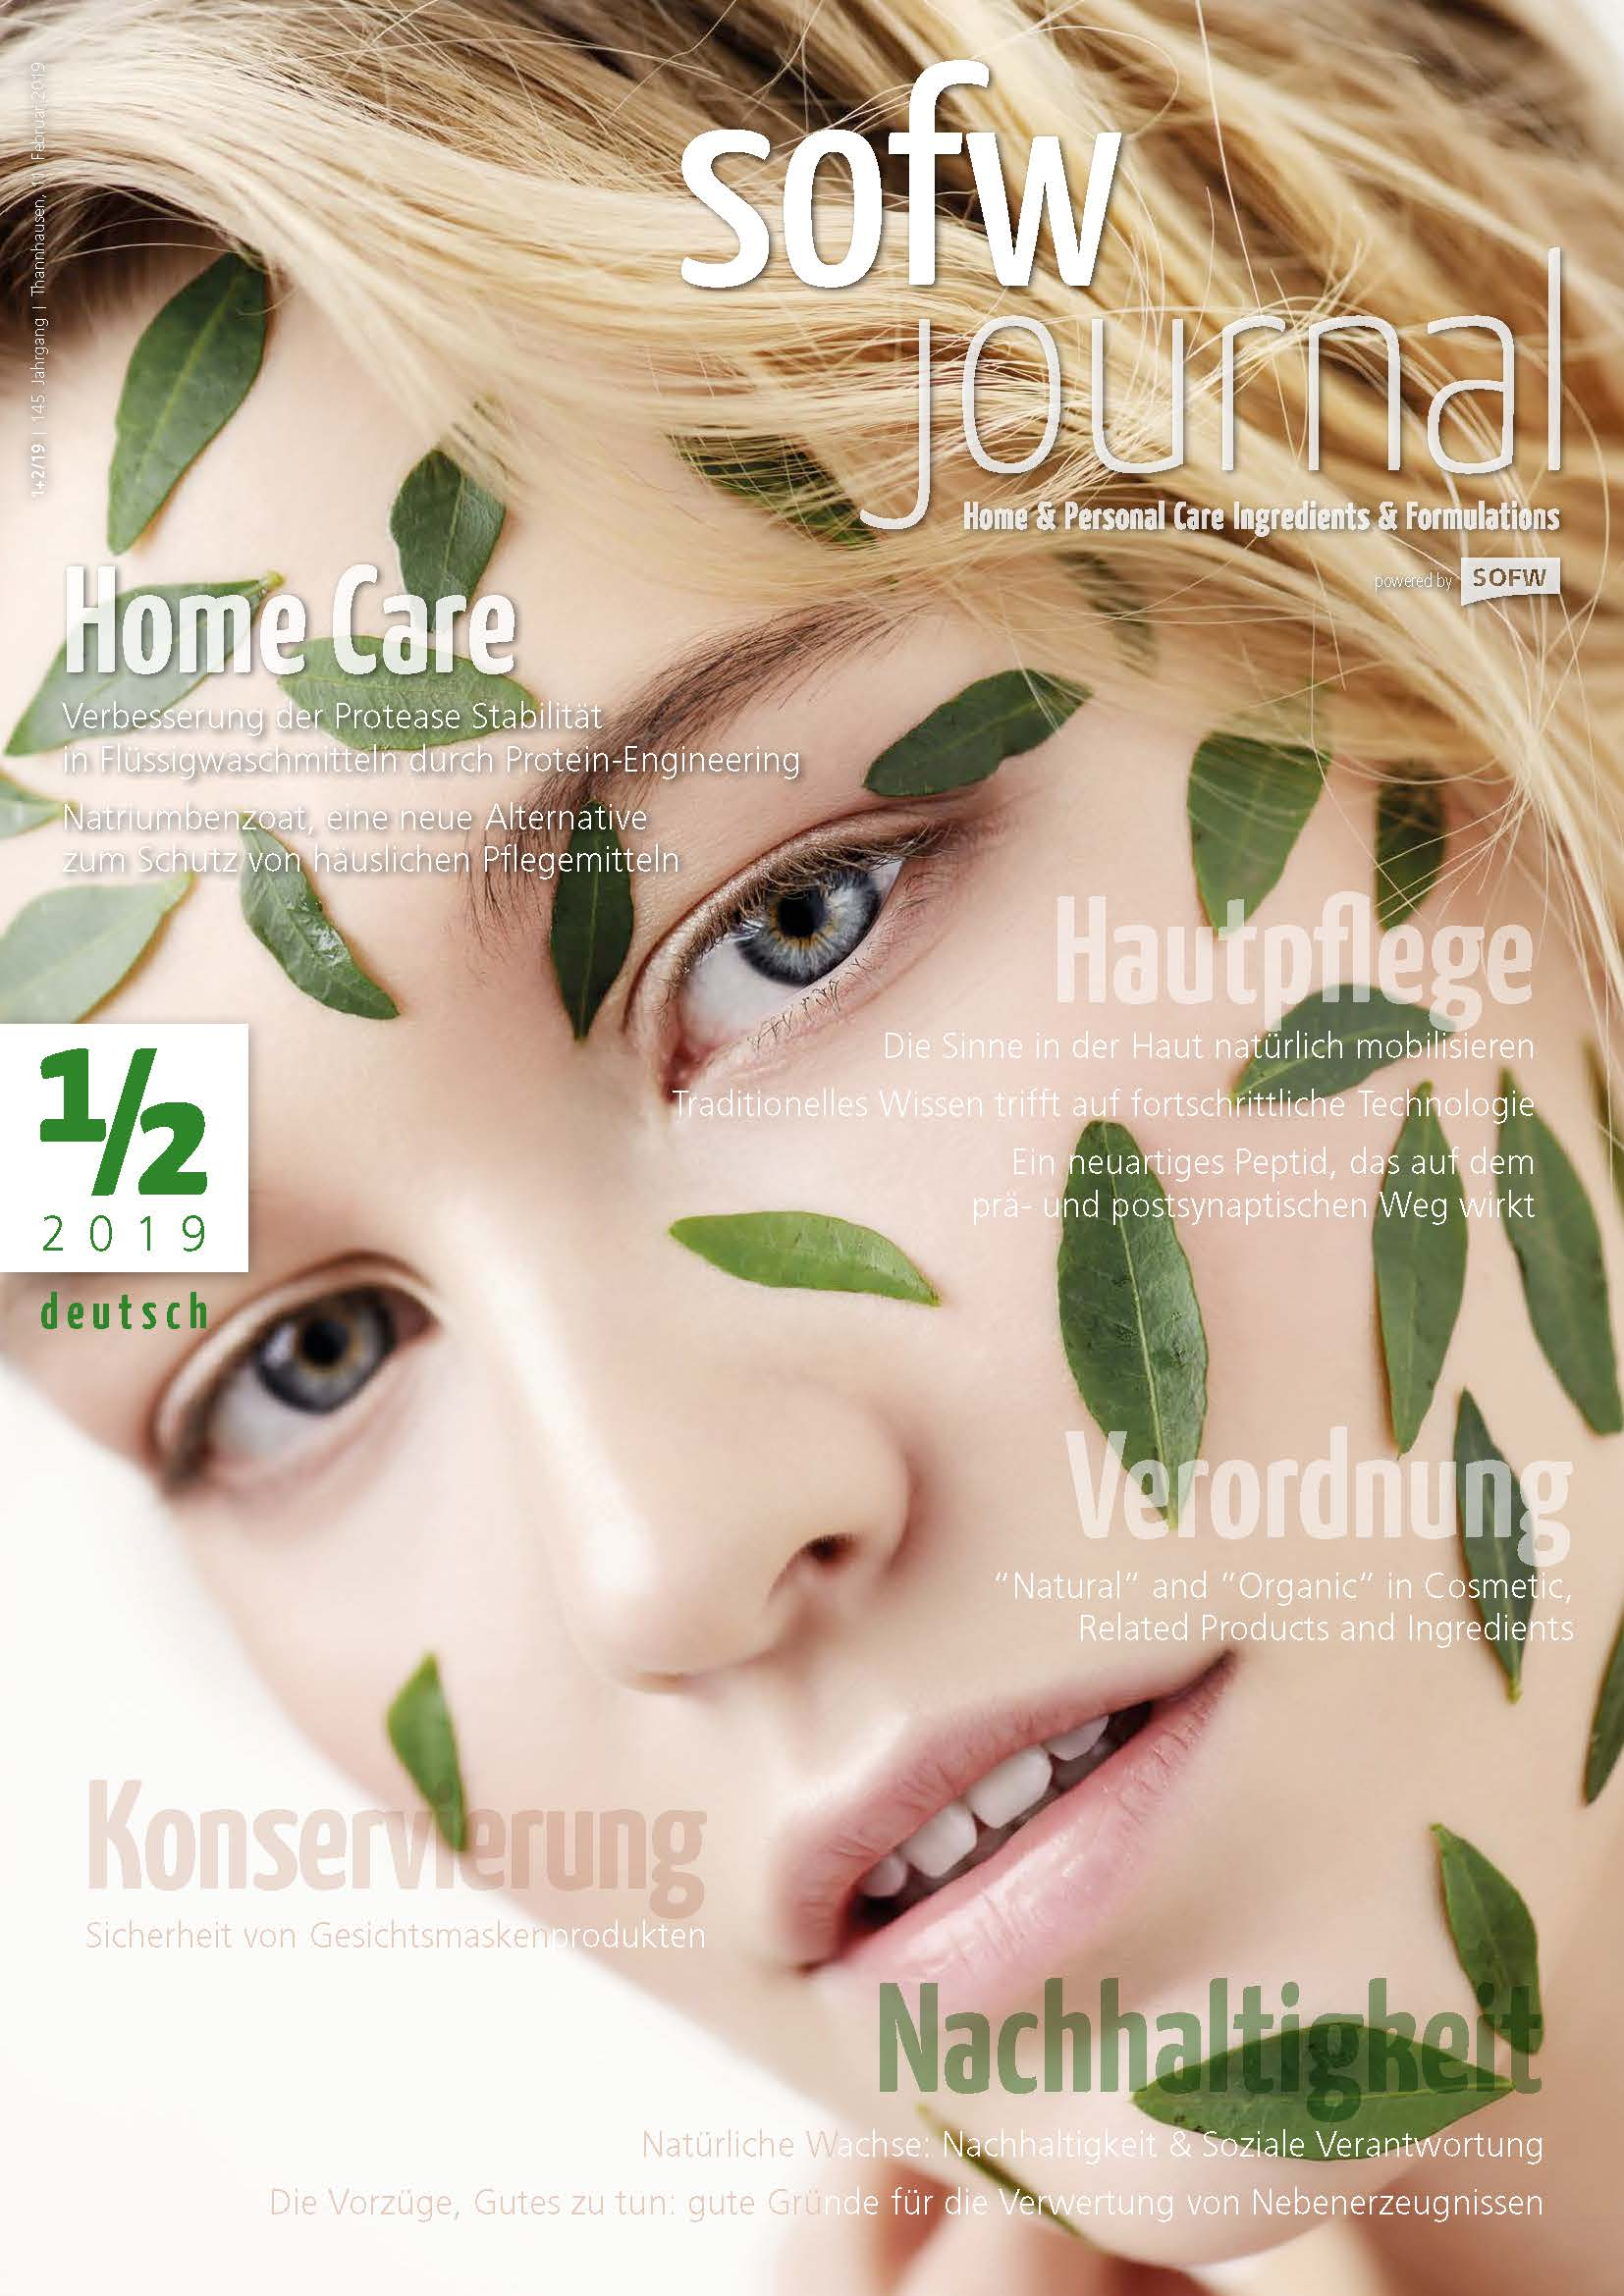 sofwjournal_de_2019_01_cover